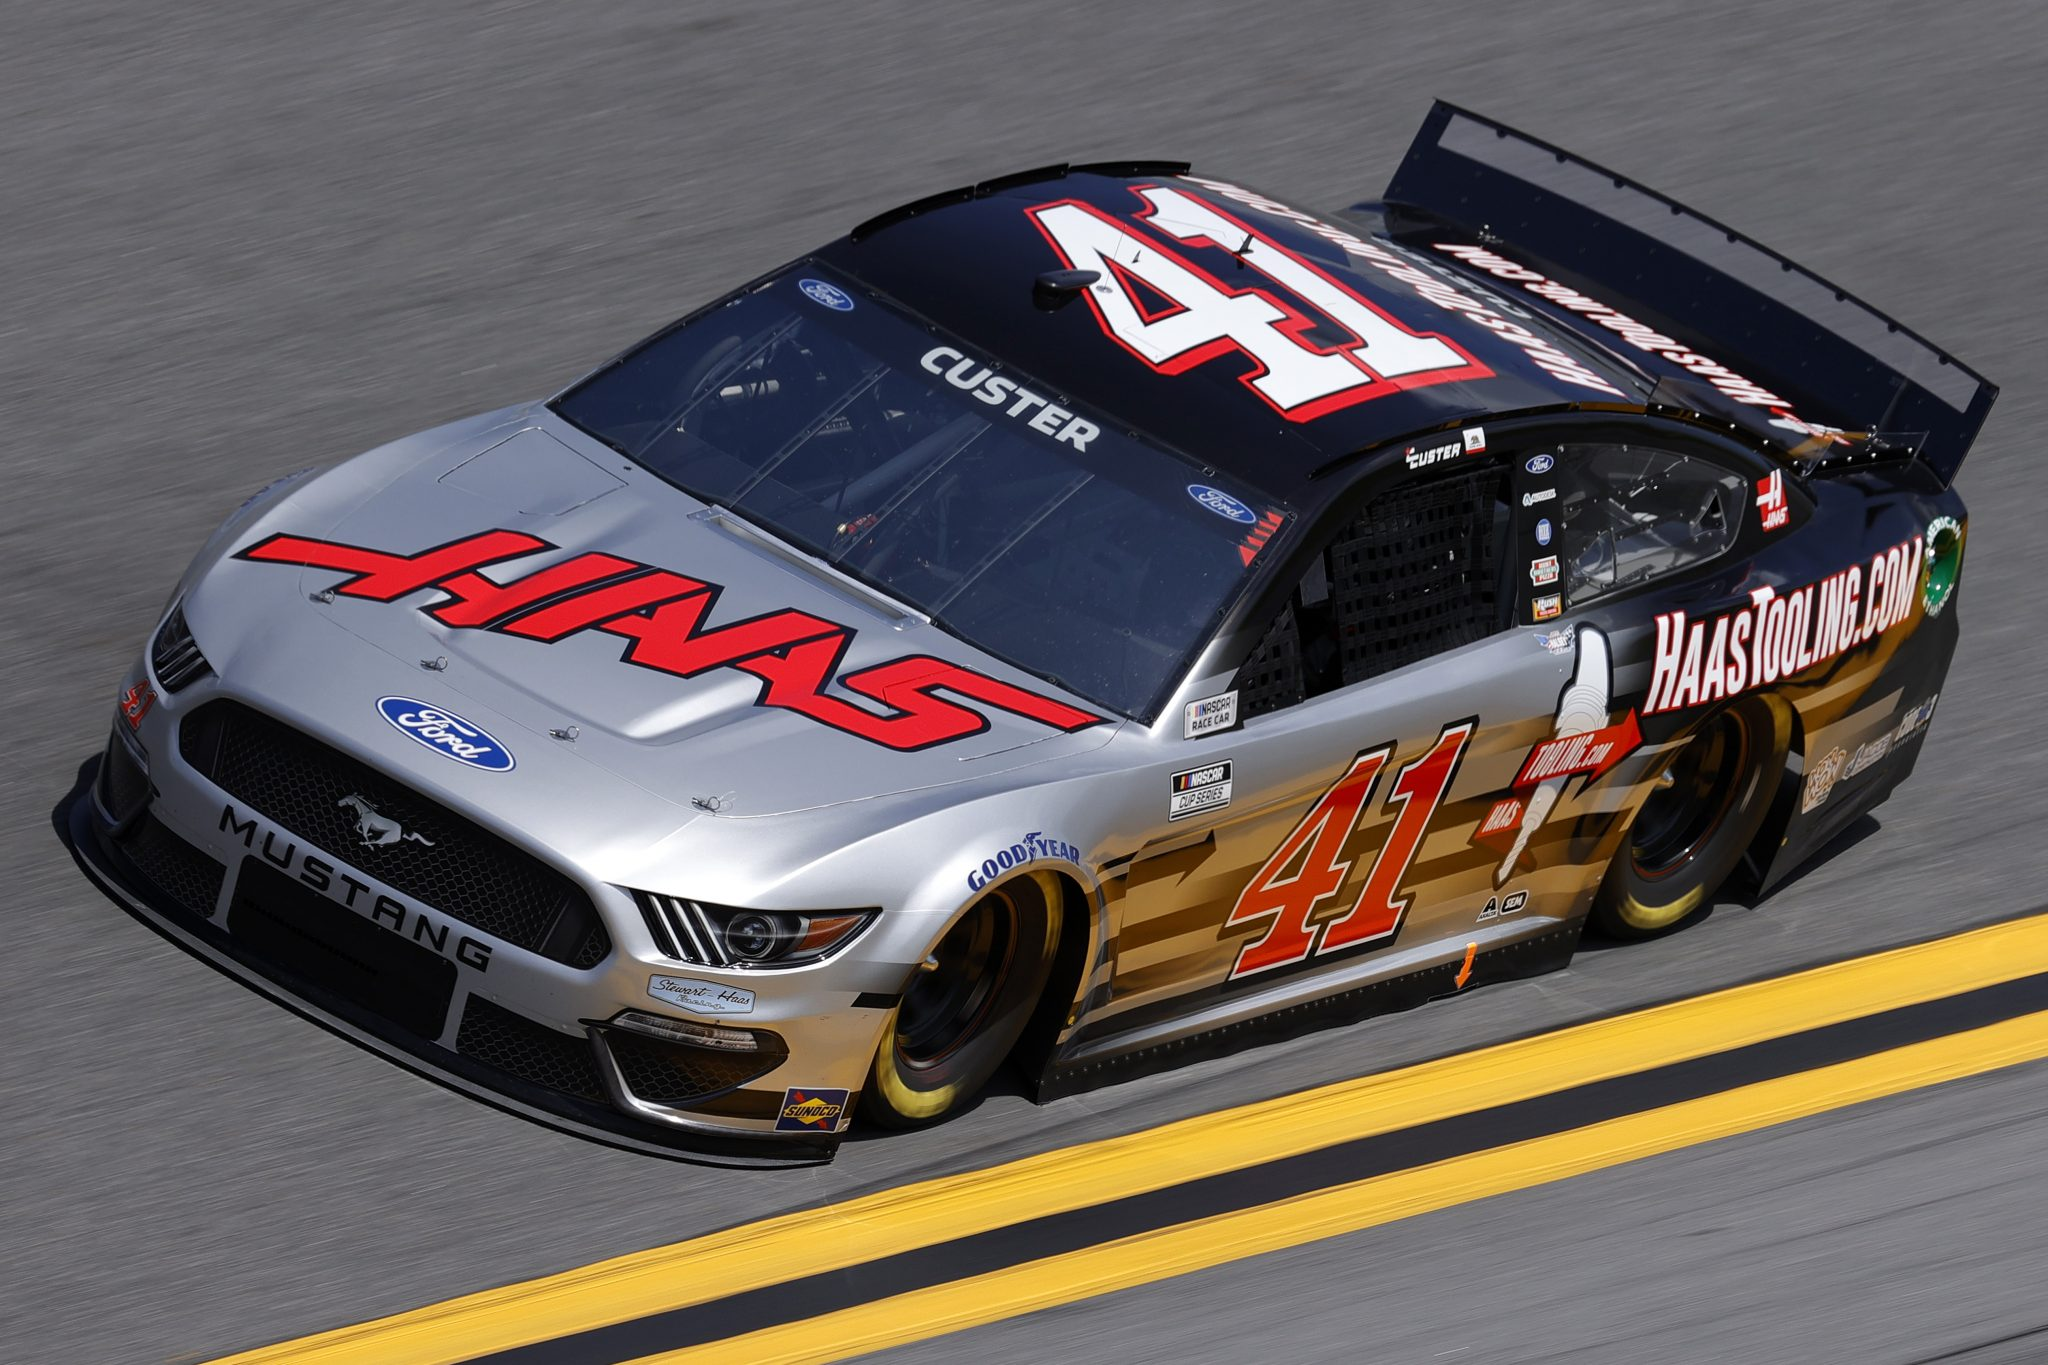 DAYTONA BEACH, FLORIDA - FEBRUARY 10: Cole Custer, driver of the #41 HaasTooling.com Ford, drives during practice for the NASCAR Cup Series 63rd Annual Daytona 500 at Daytona International Speedway on February 10, 2021 in Daytona Beach, Florida. (Photo by Jared C. Tilton/Getty Images) | Getty Images